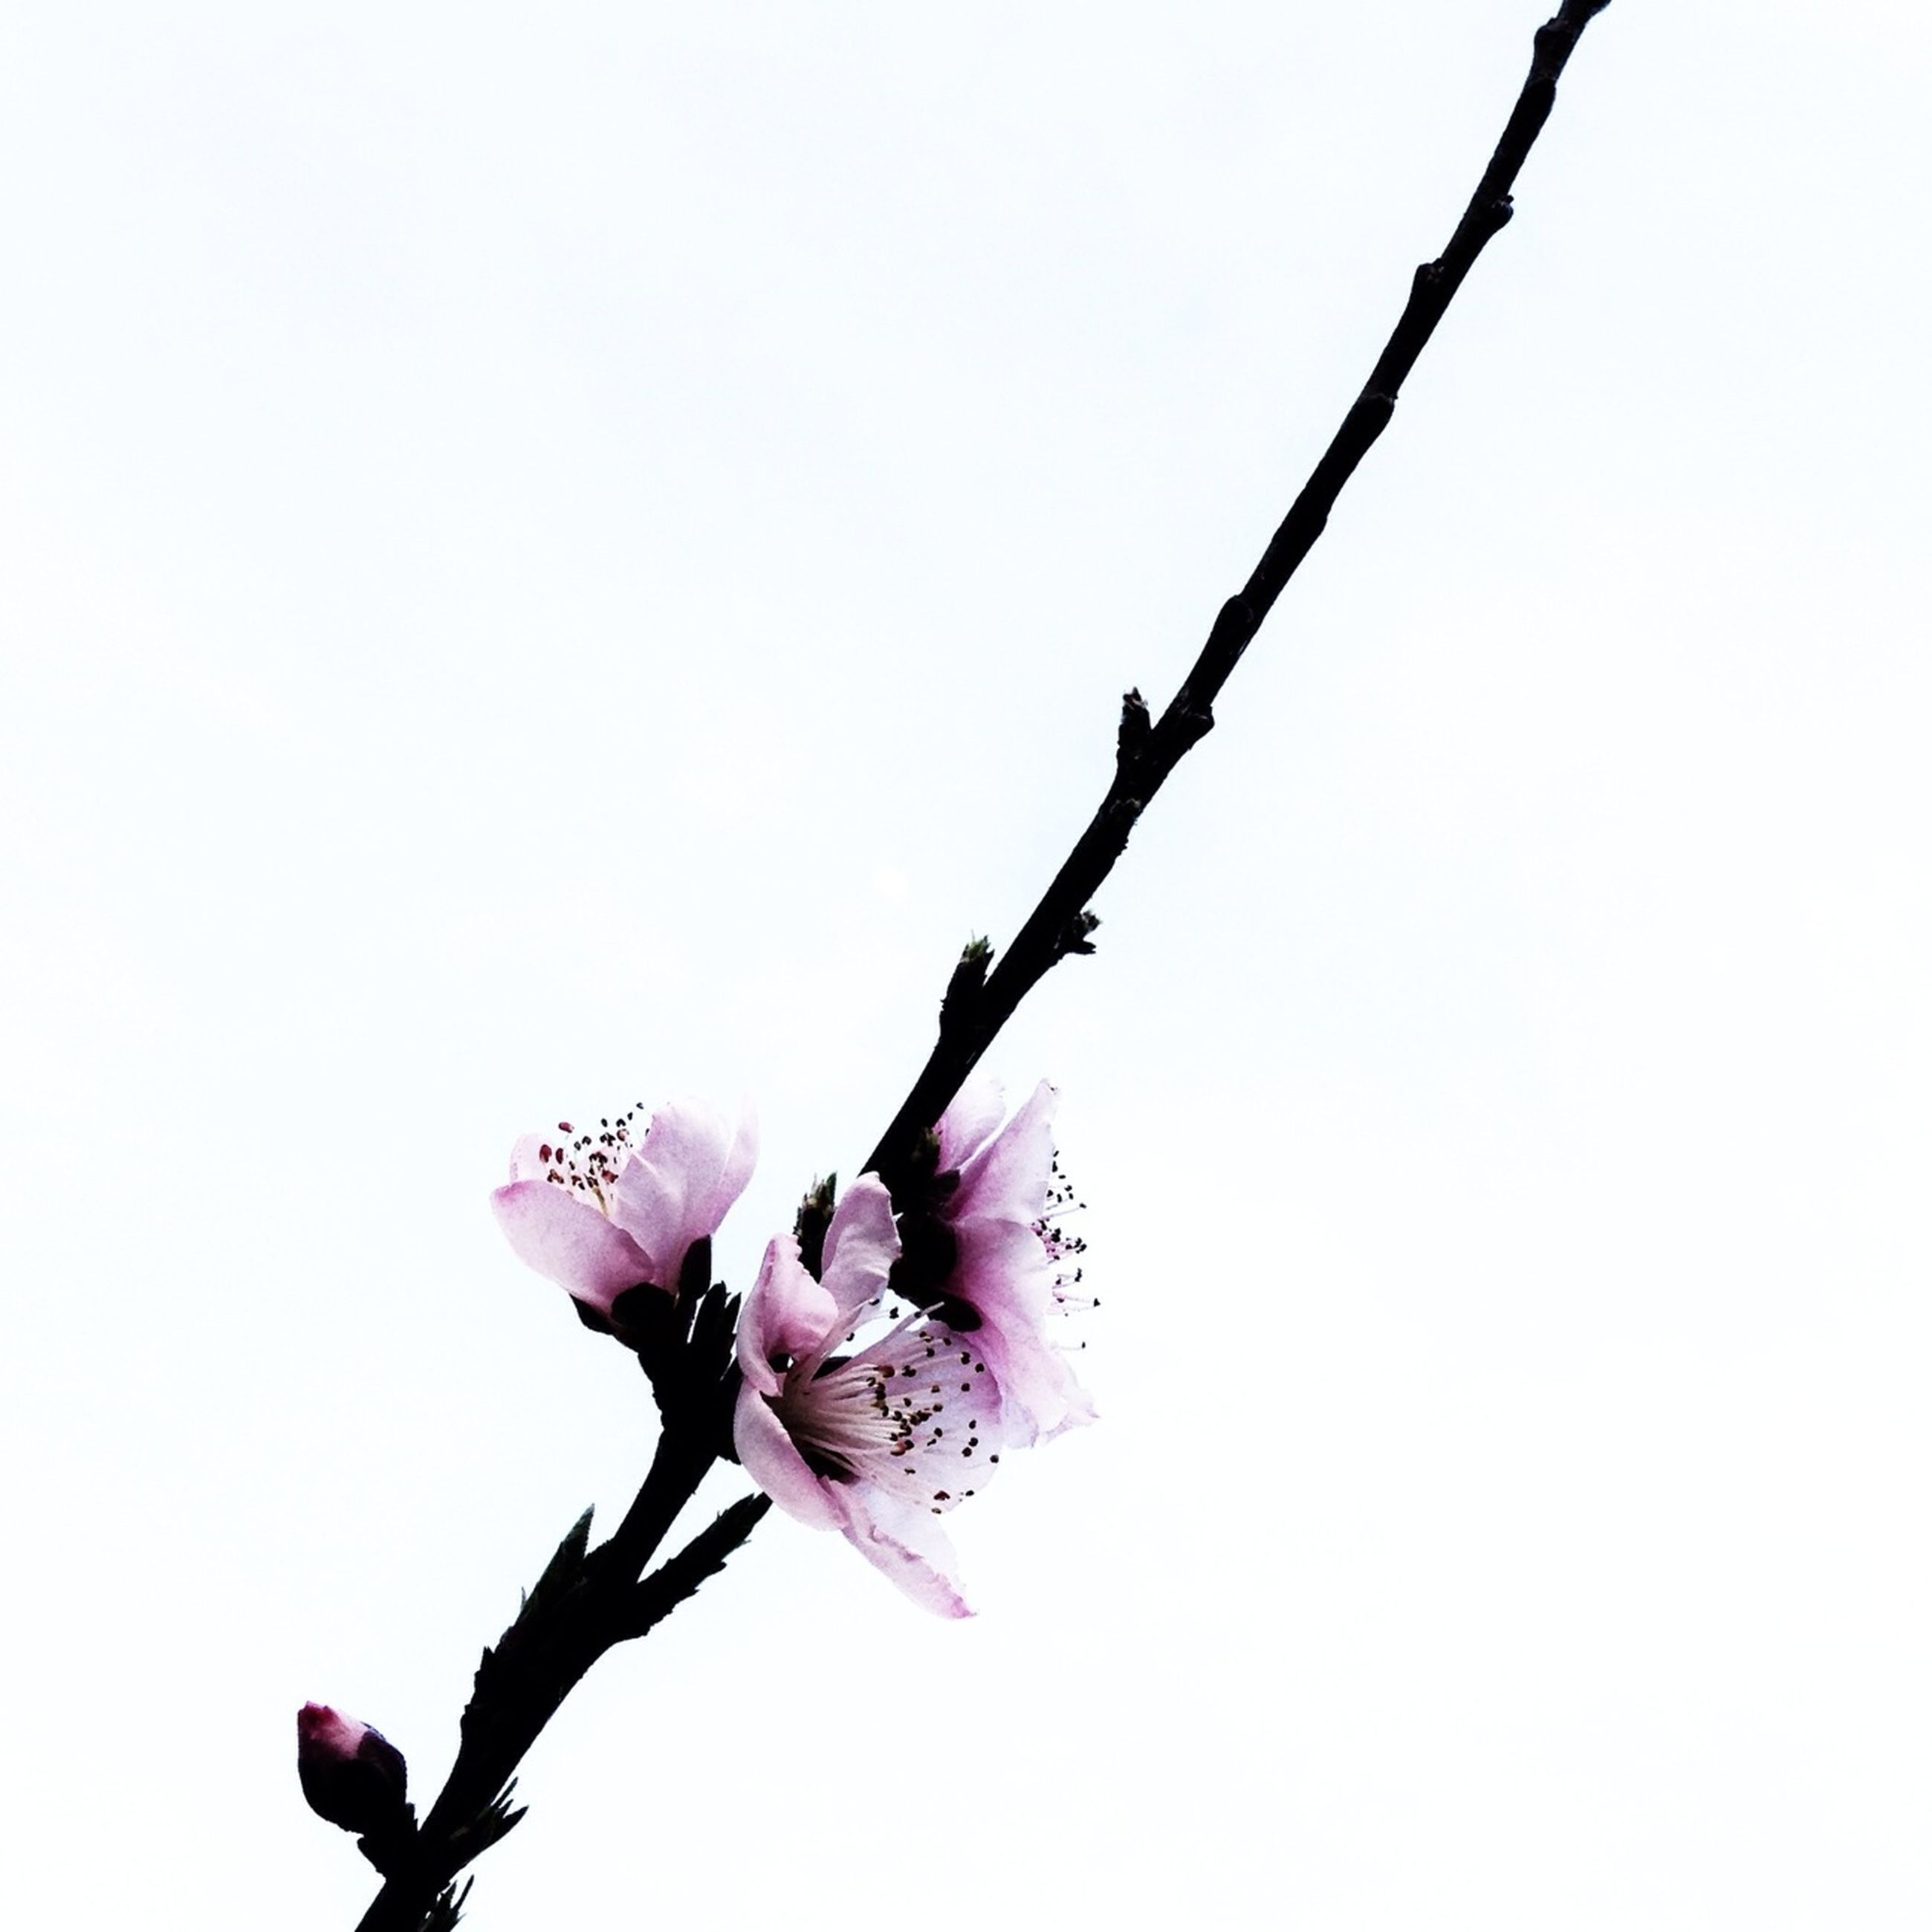 flower, clear sky, fragility, low angle view, branch, copy space, freshness, beauty in nature, nature, pink color, growth, stem, petal, twig, white background, close-up, bud, no people, blossom, day